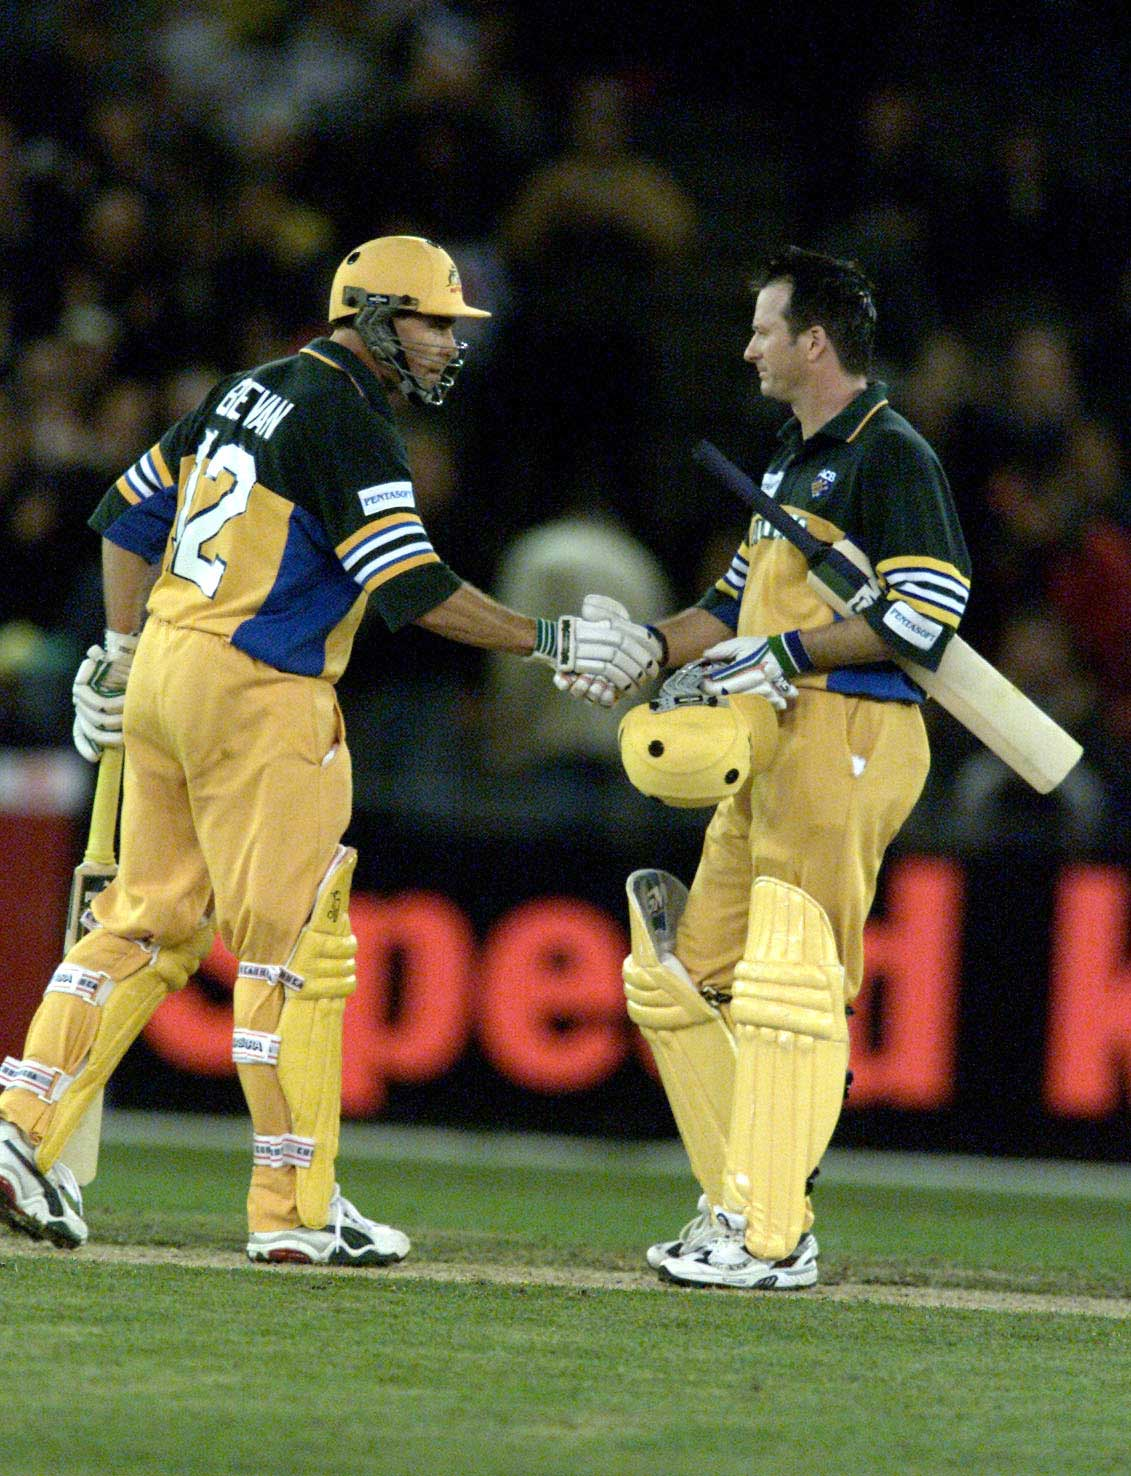 Bevan and Waugh torched the Proteas under the roof